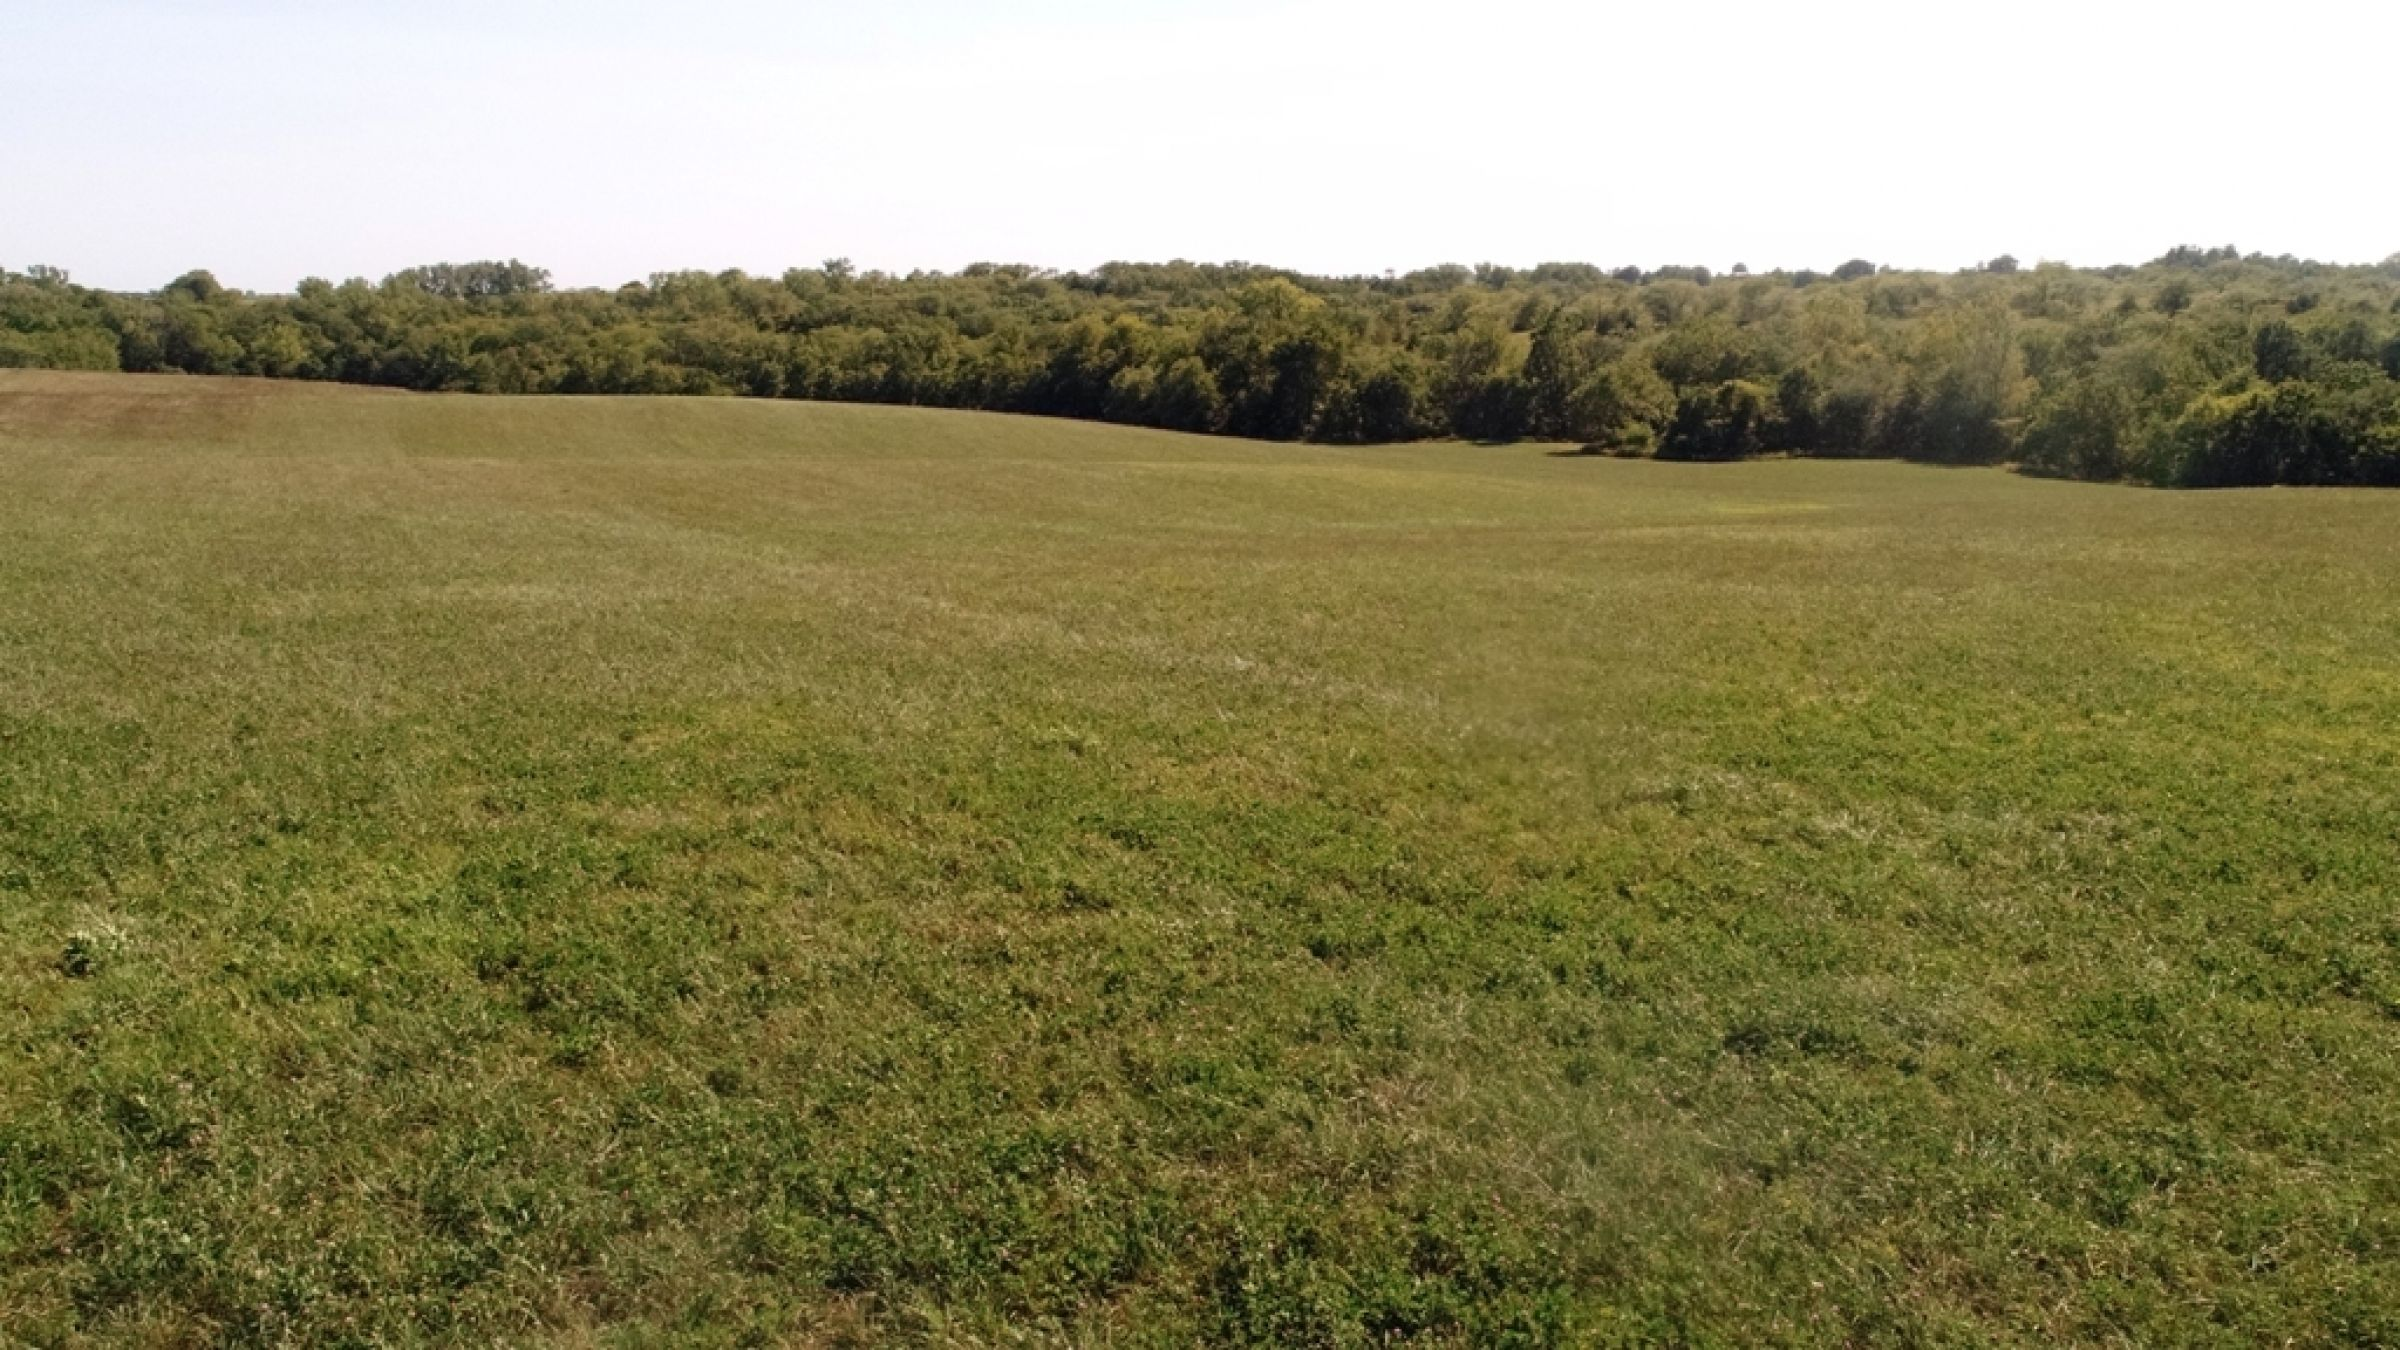 land-lucas-county-iowa-106-acres-listing-number-15133-3-2020-09-04-182129.JPG